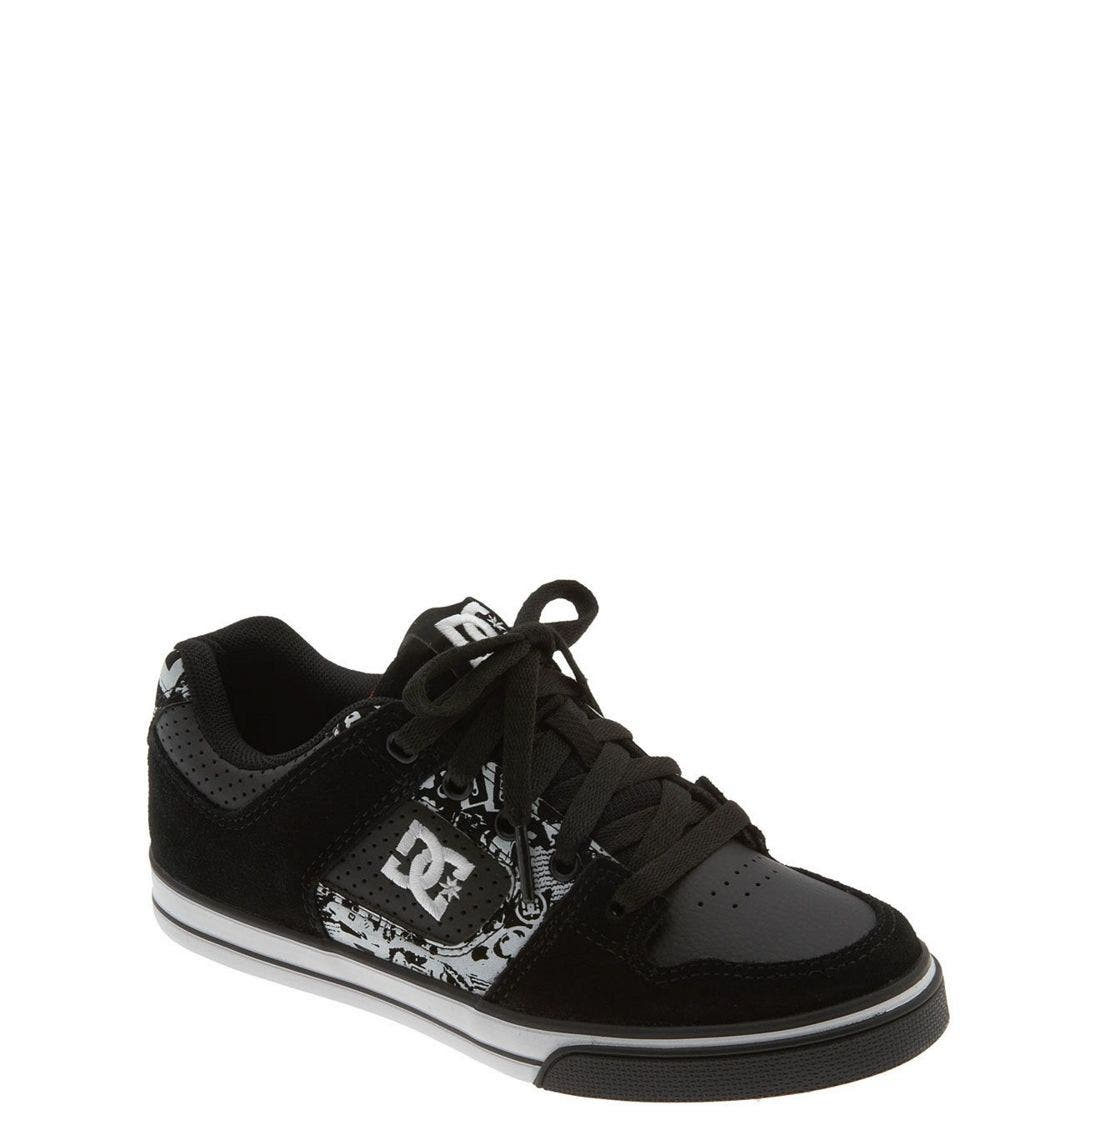 Main Image - DC Shoes 'Pure' Sneaker (Toddler, Little Kid & Big Kid)